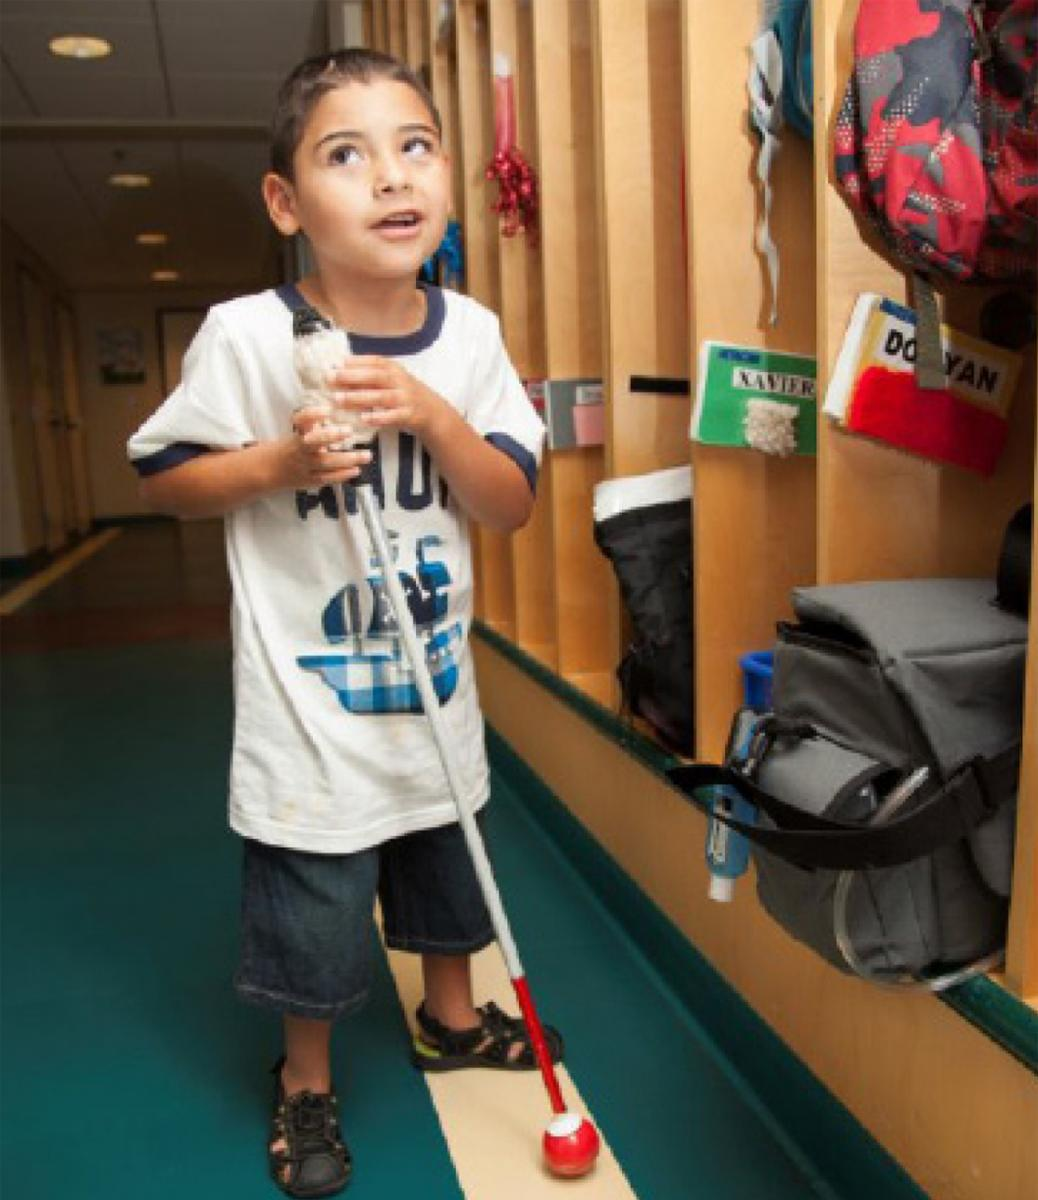 A young boy navigating the hall with his cane.